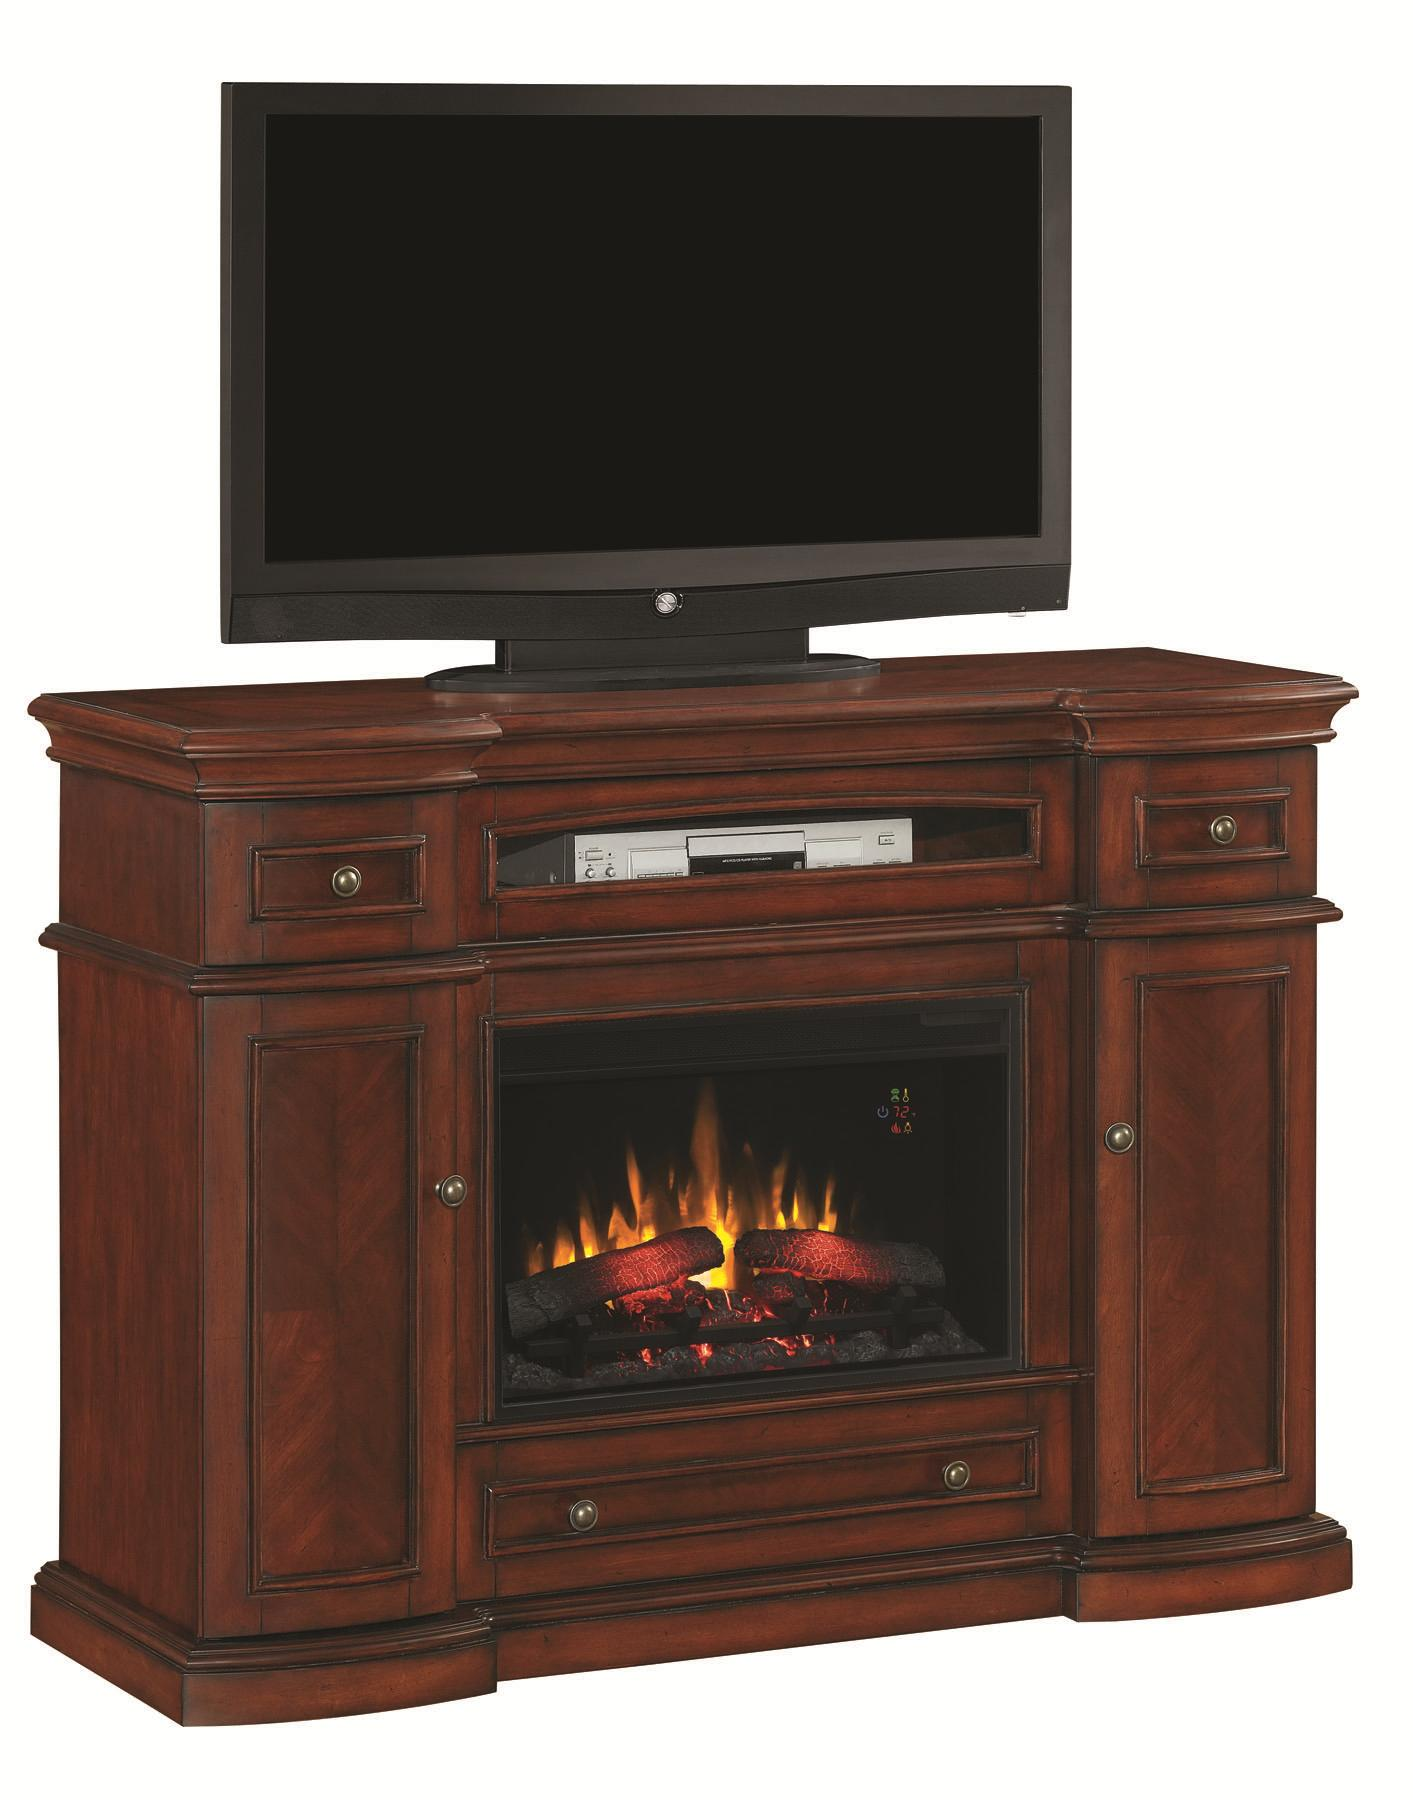 ClassicFlame Montgomery Fireplace Media Mantel - Item Number: 26MM2490-C233+26EF023GRA